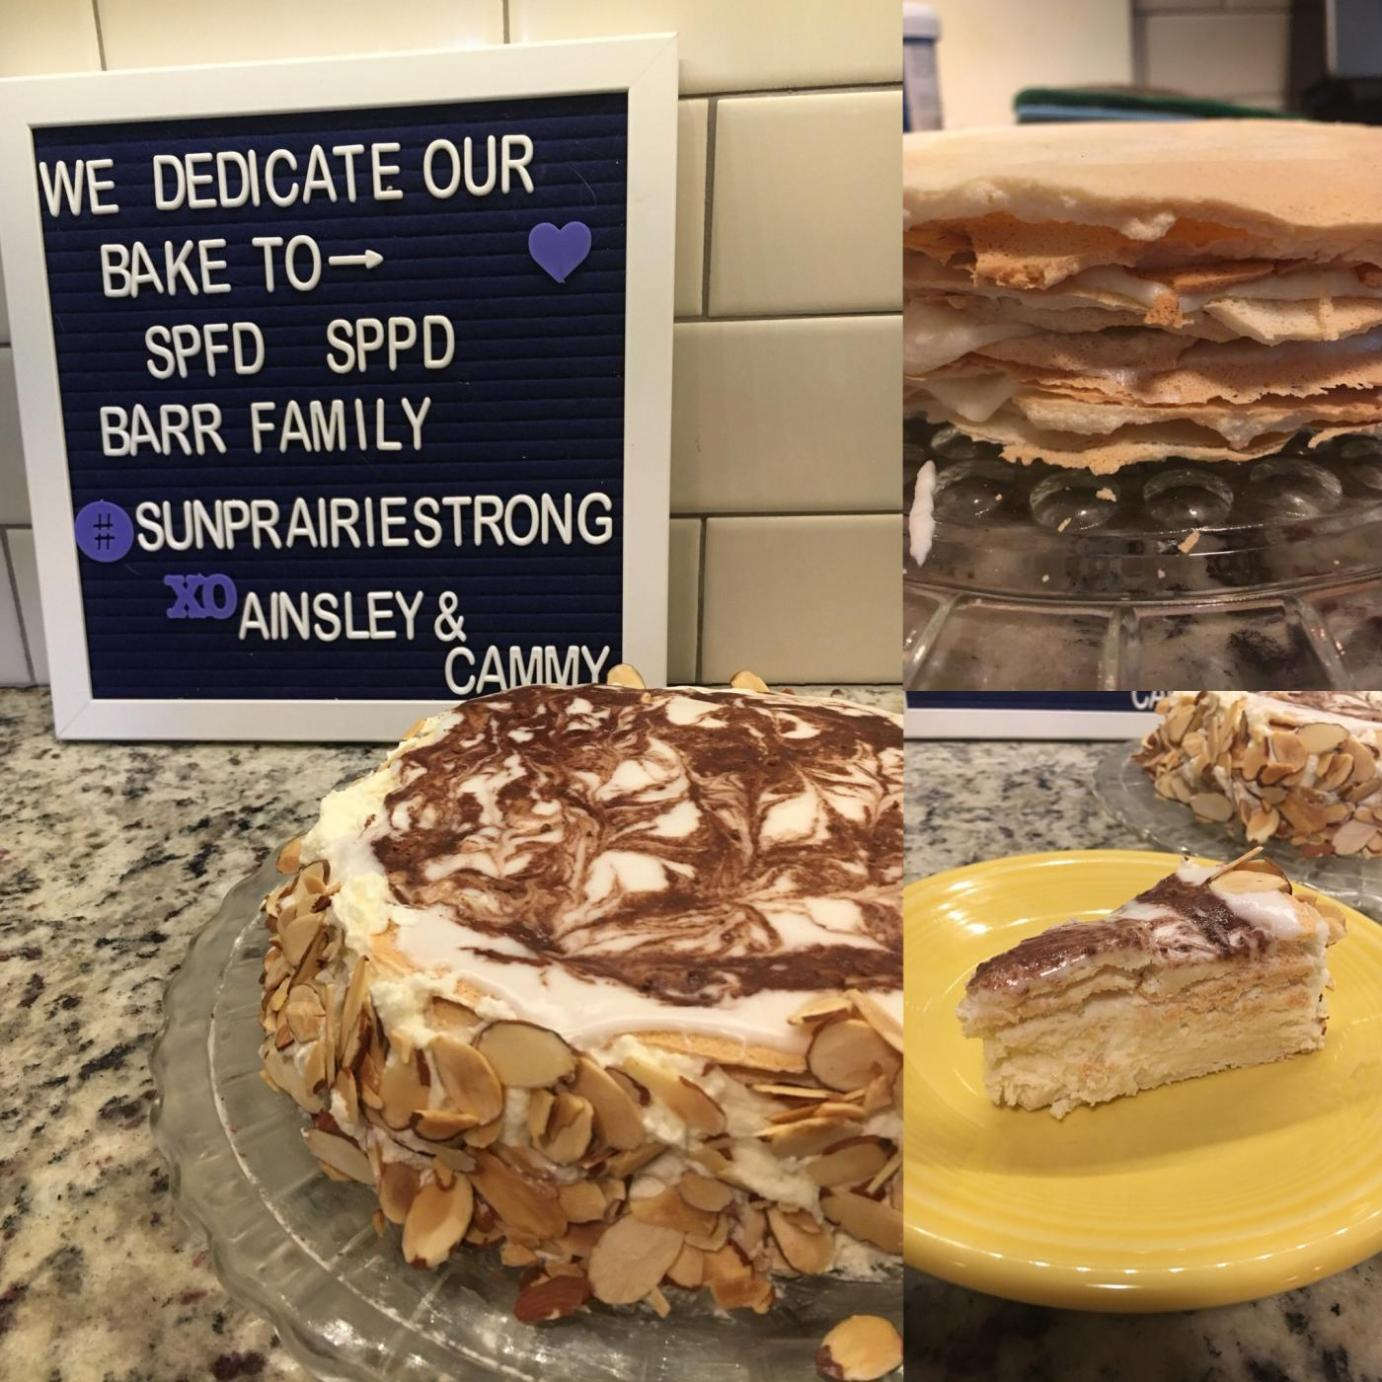 Cammy and Ainsley's torte photo includes a message of support for their community.